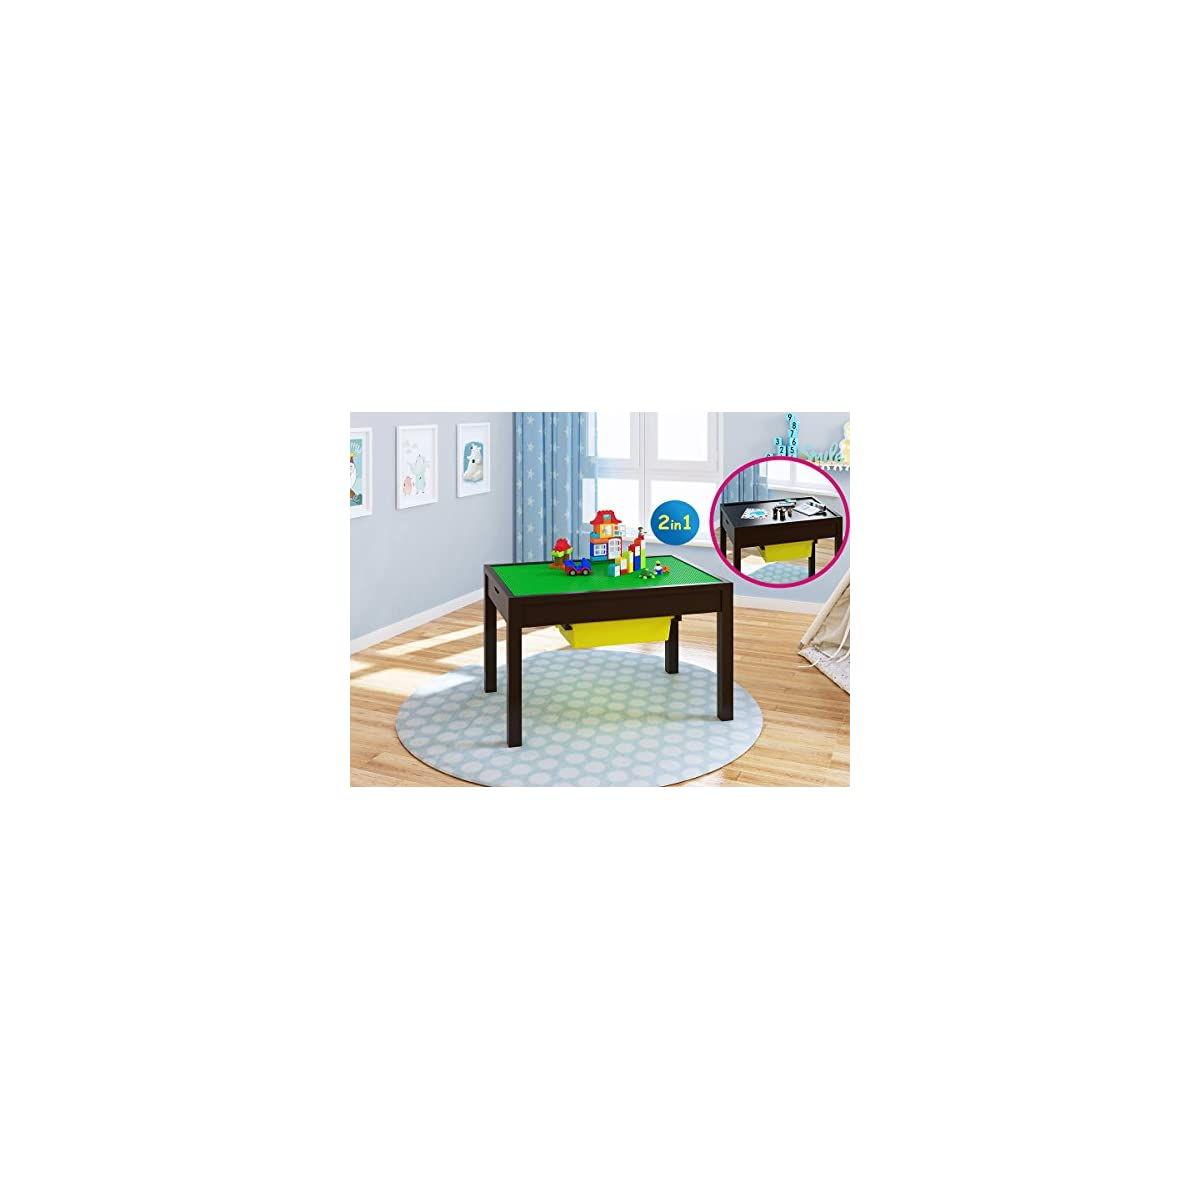 UTEX 2-in 1 Kids Large Table with Storage for Older Kids Construction Table for Kids,Boys,Girls White